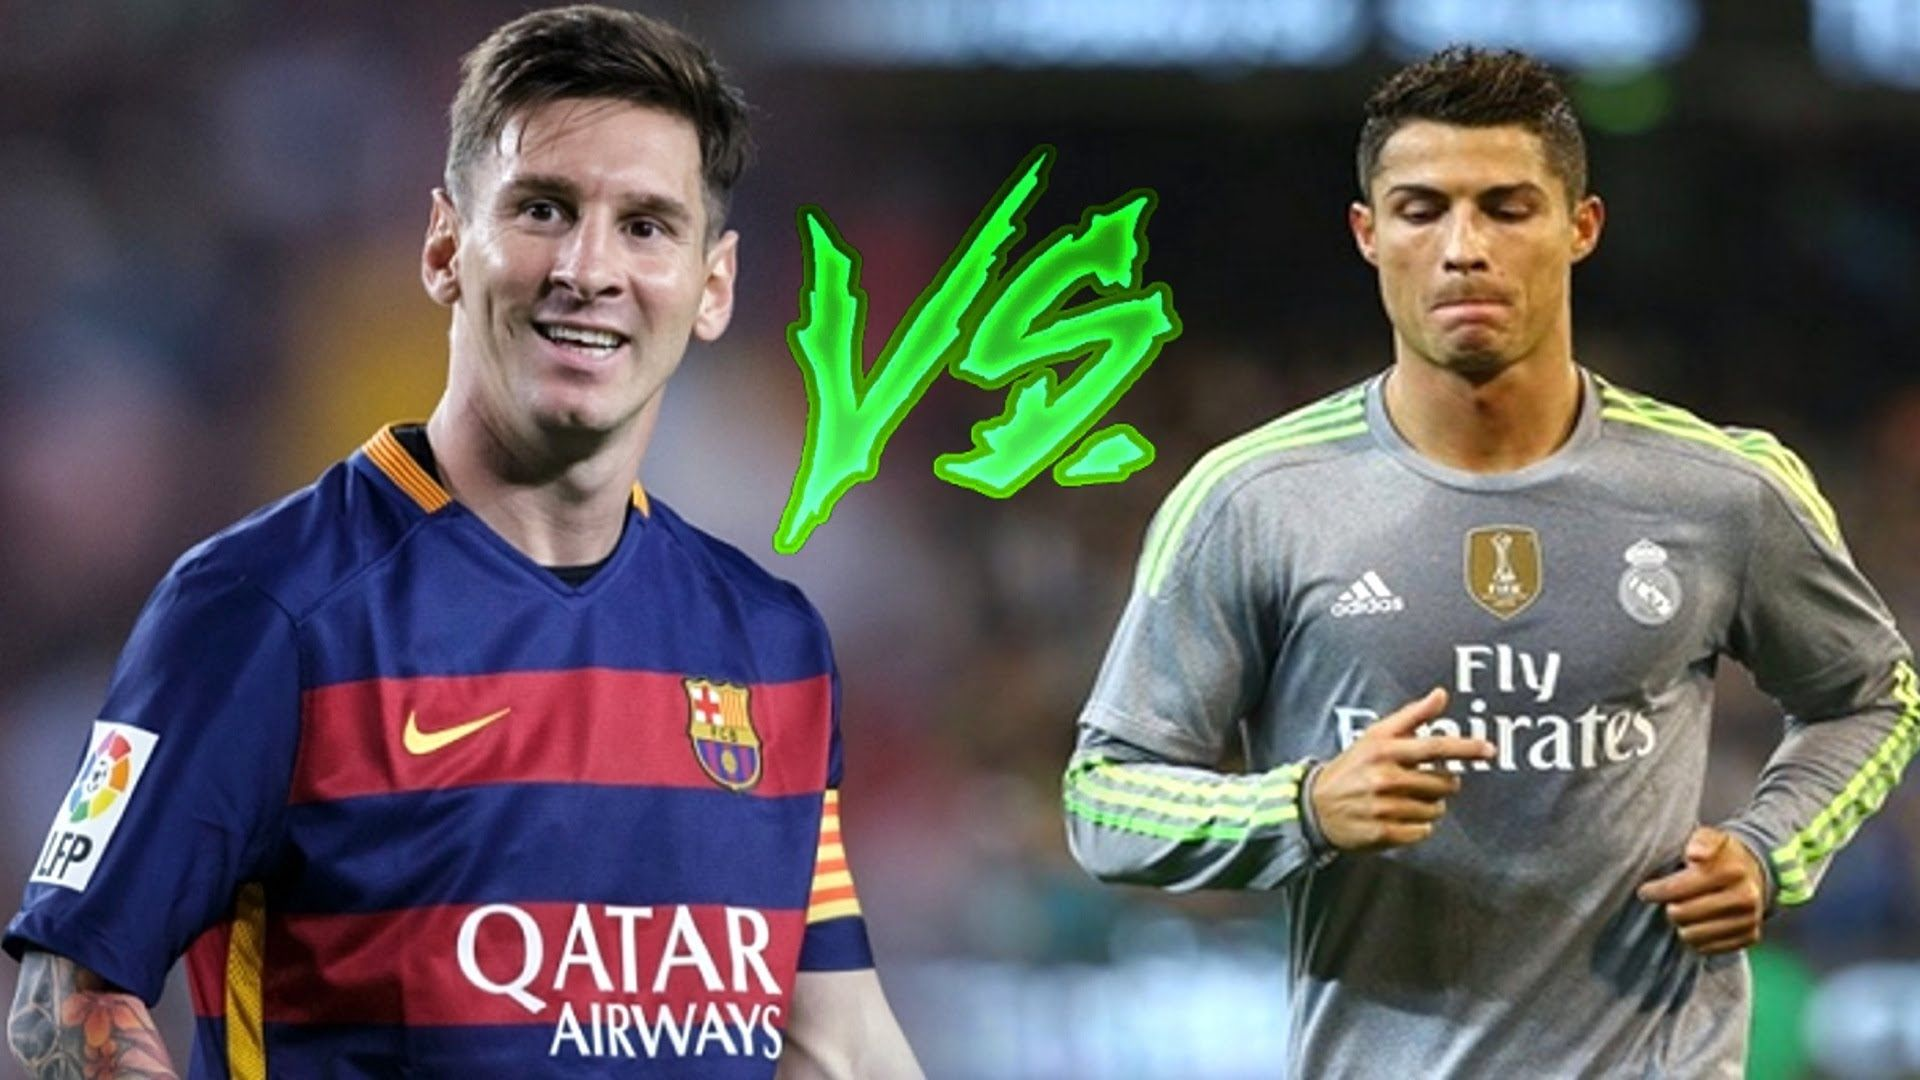 Nike Trainer Gratuitement 3 0 V4 Vs Cr7 Messi